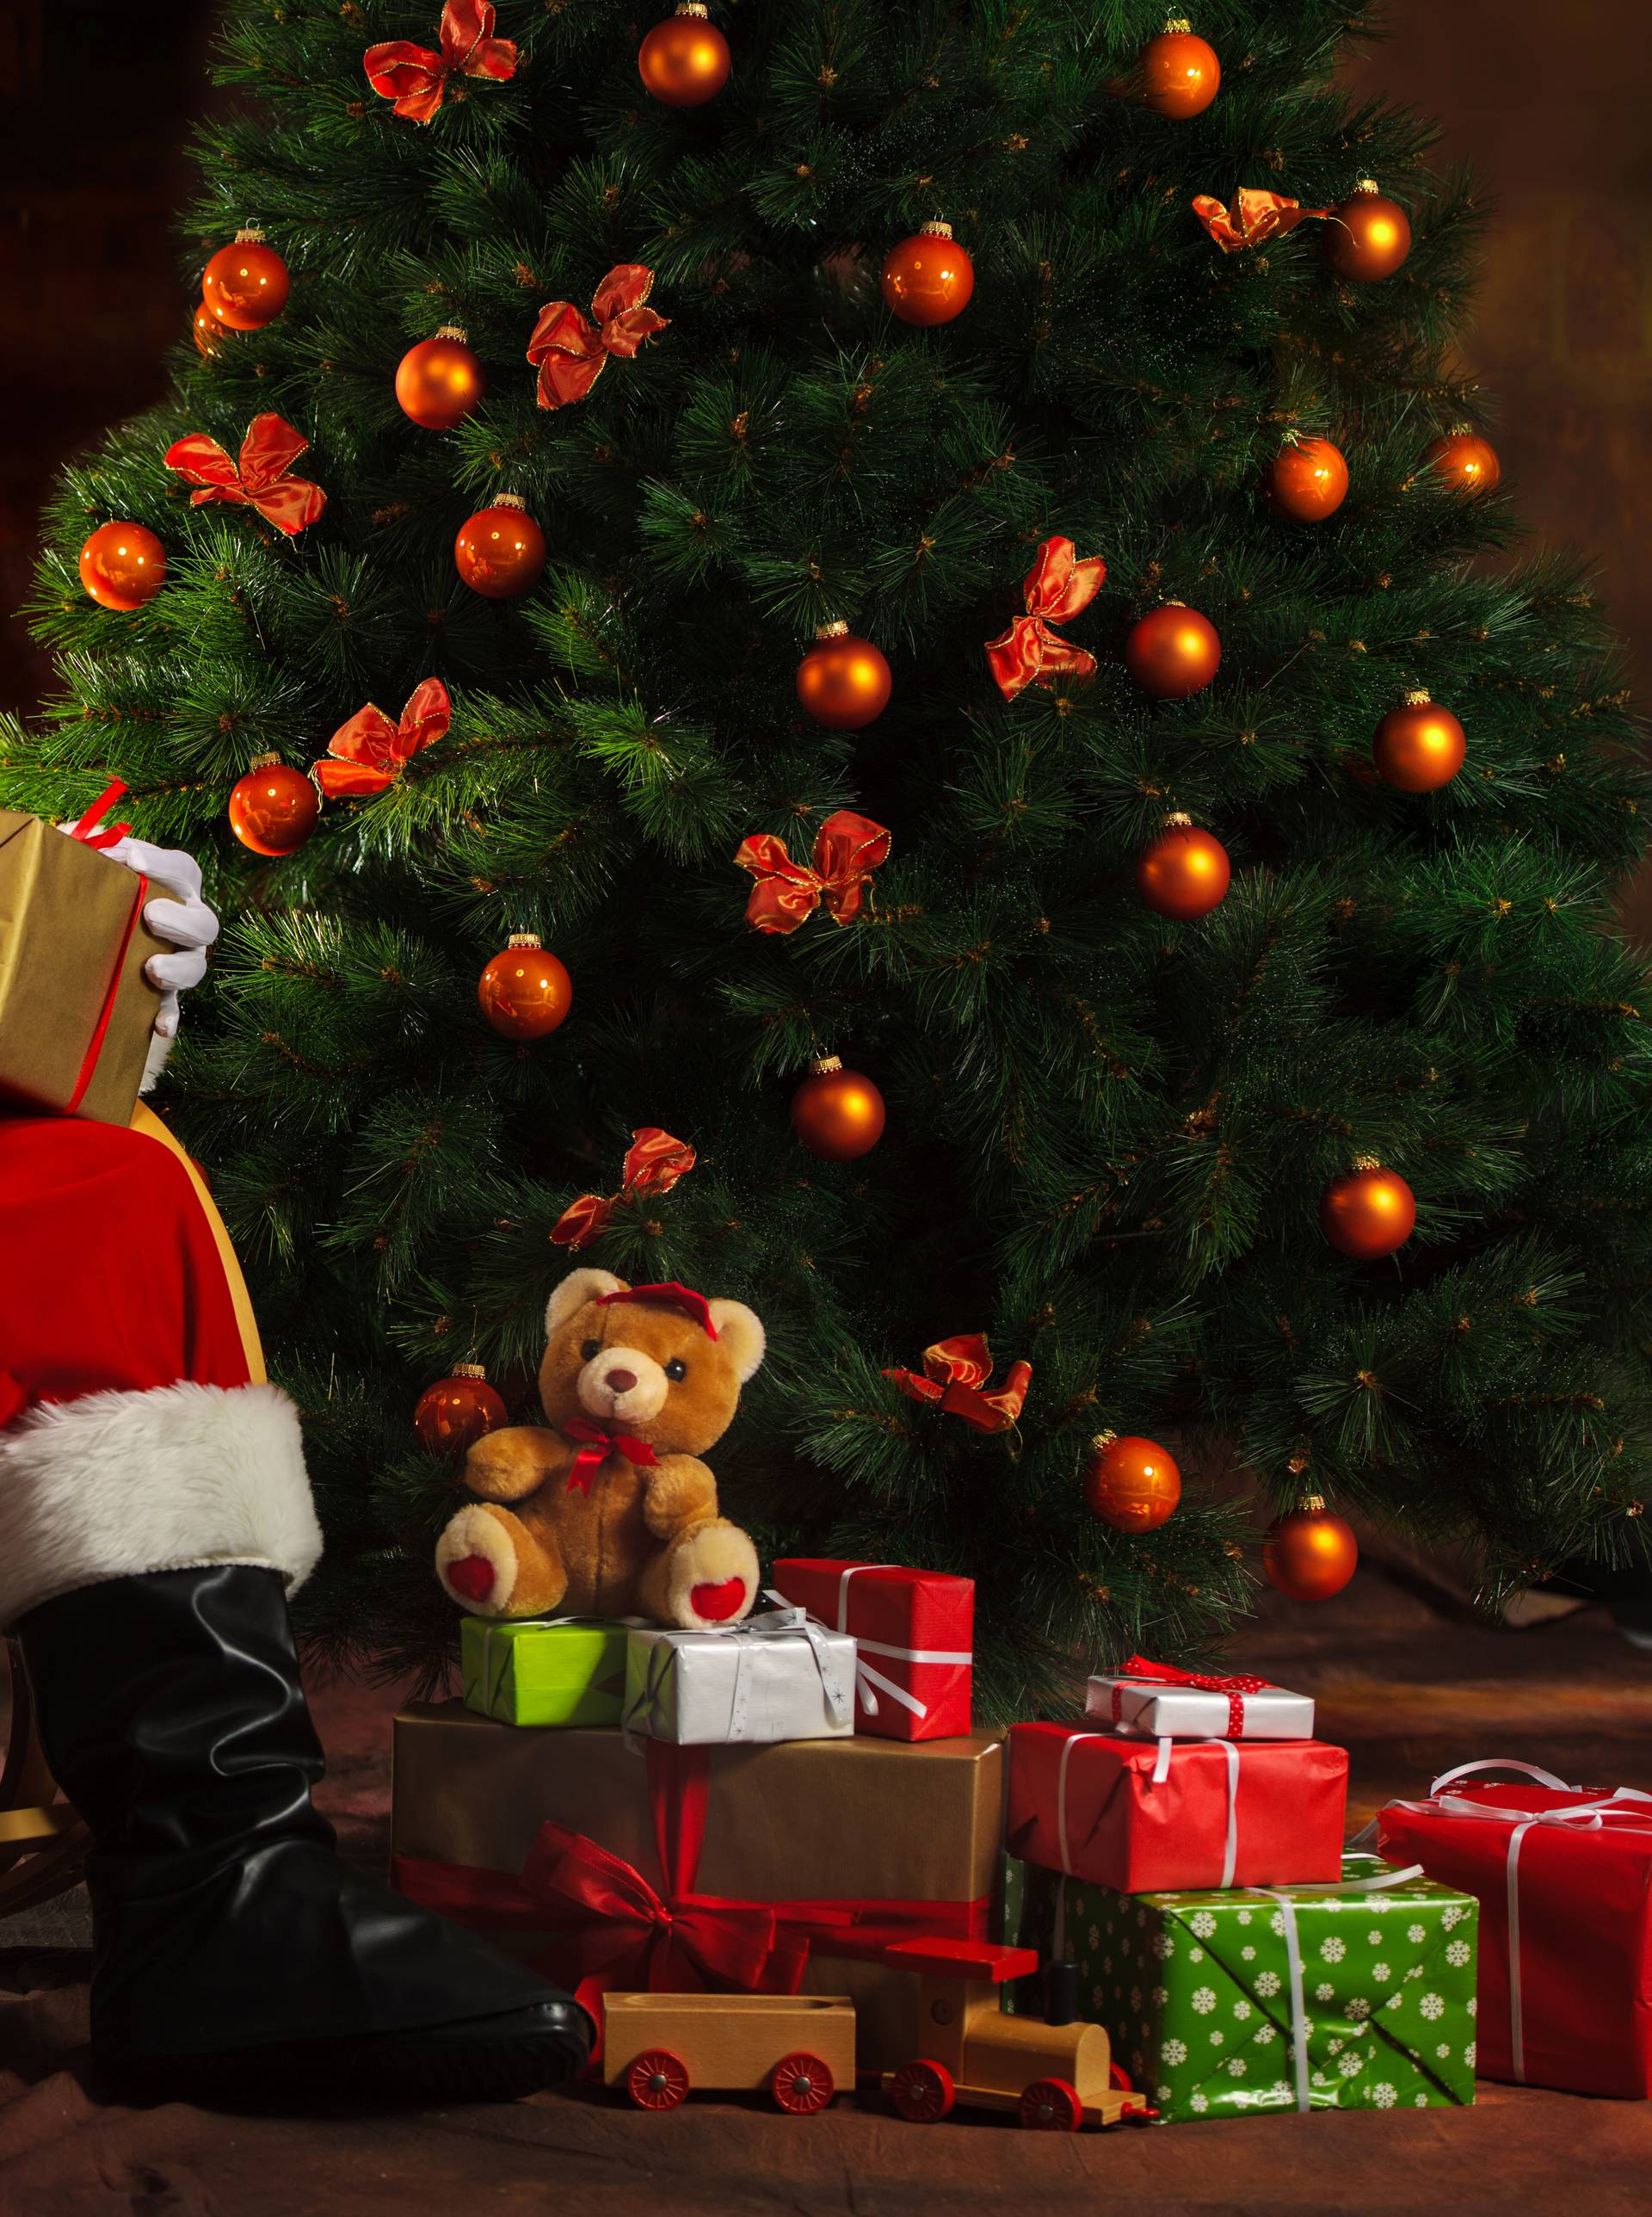 Santa Claus sitting in front of fireplace